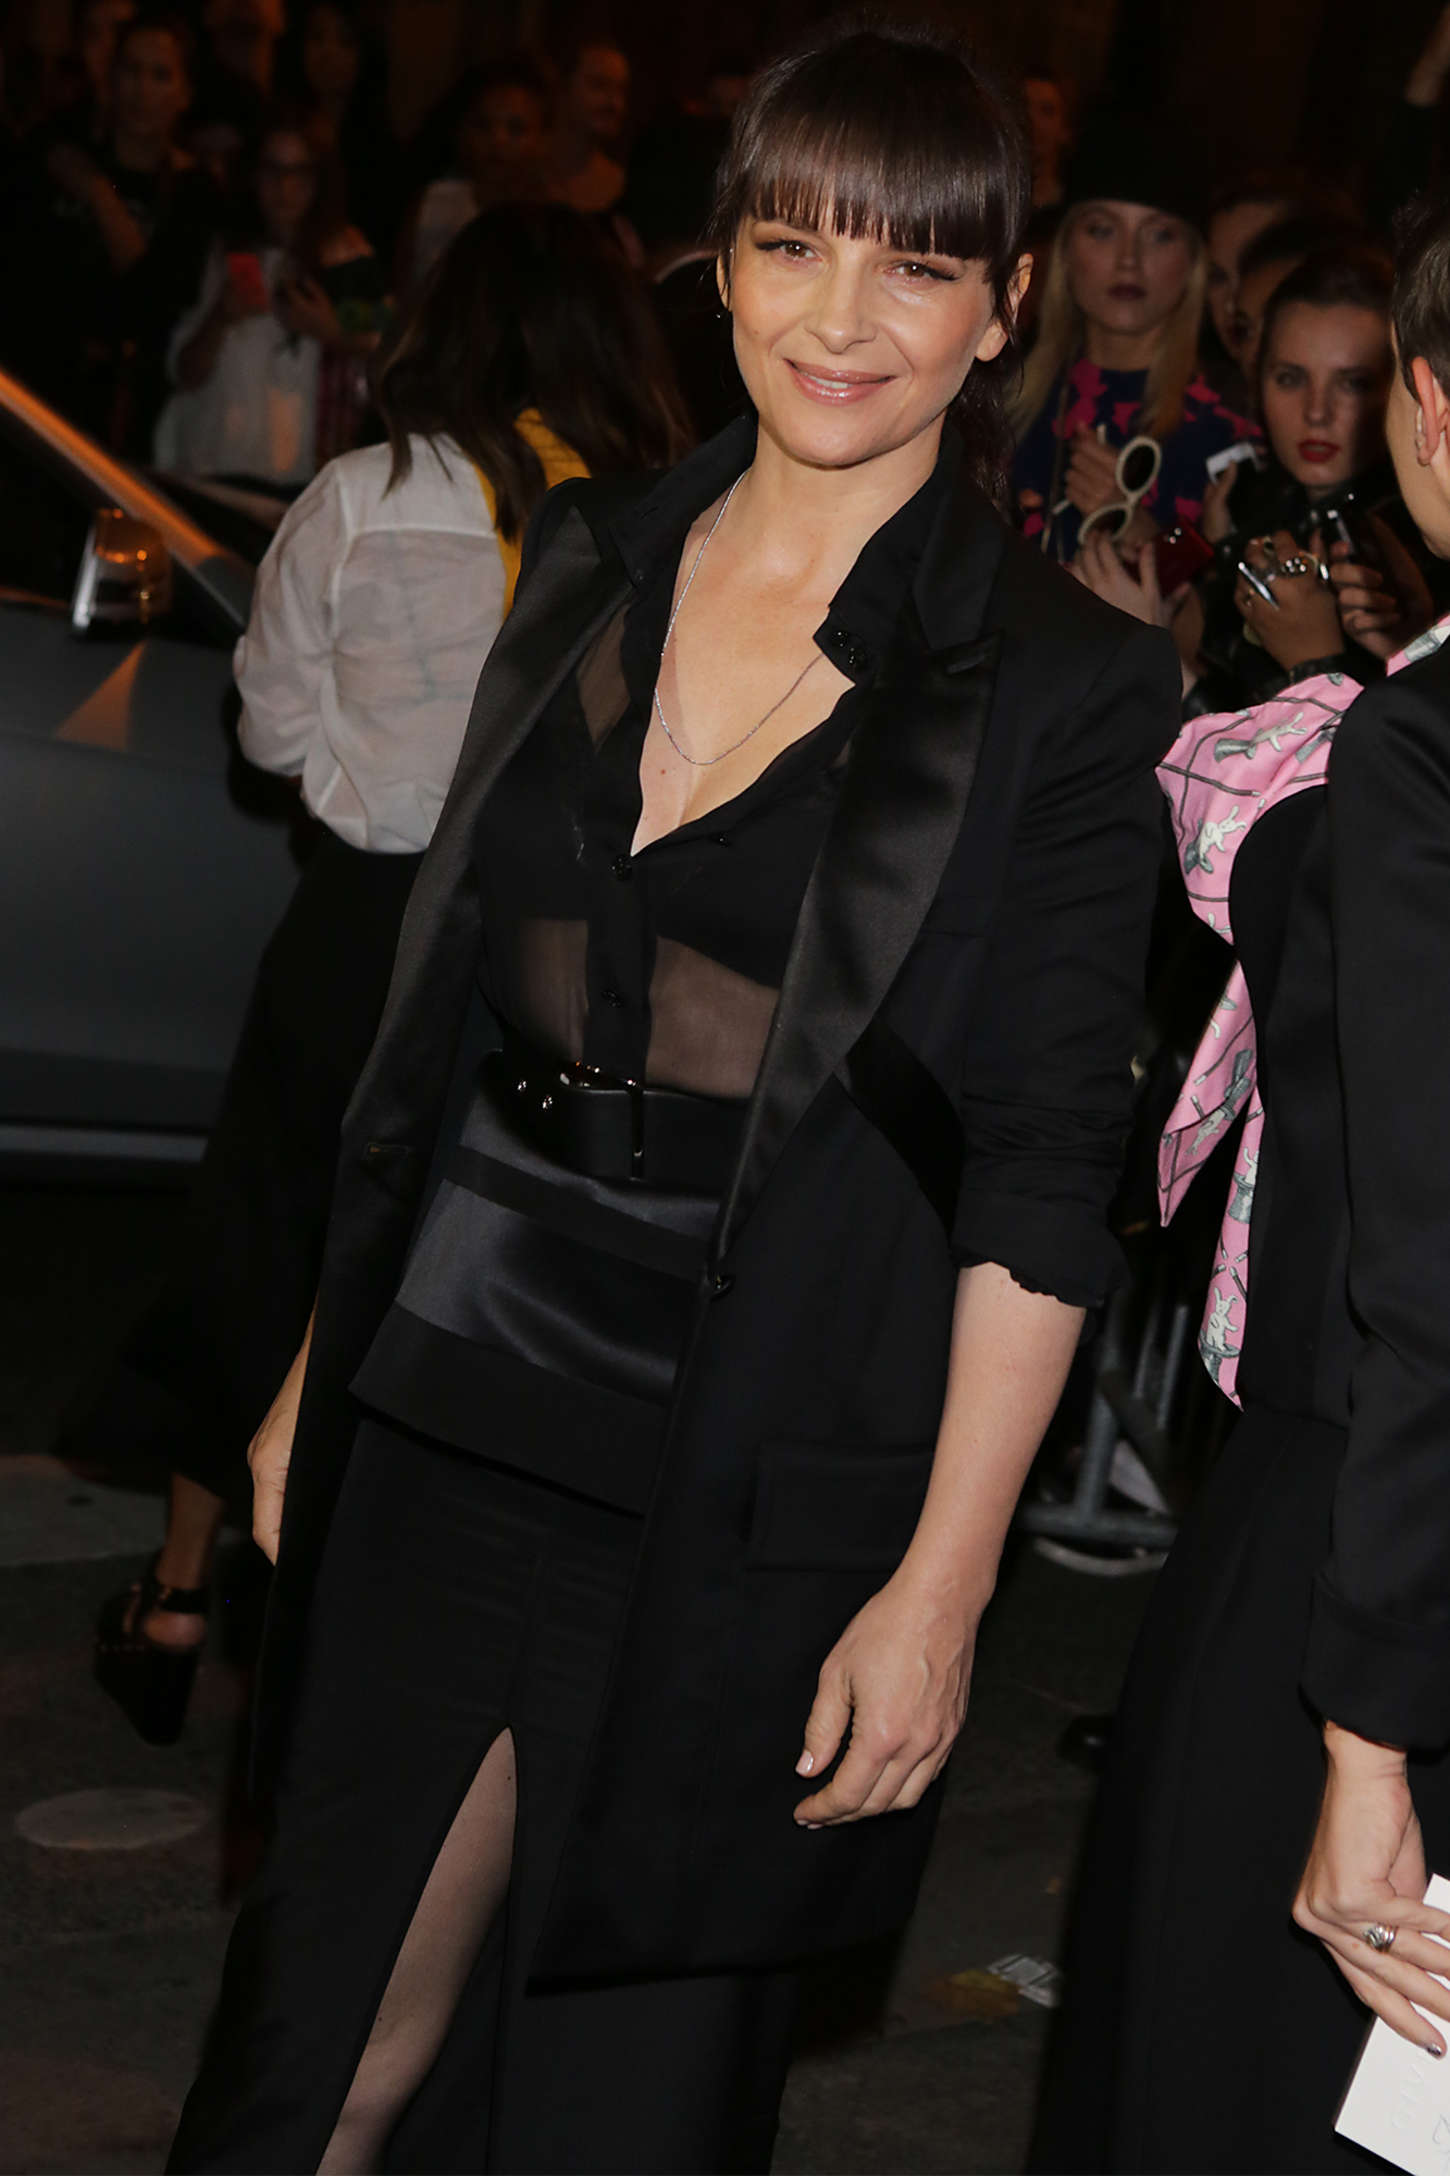 Juliette Binoche Givenchy Chanel Fashion Show in Paris